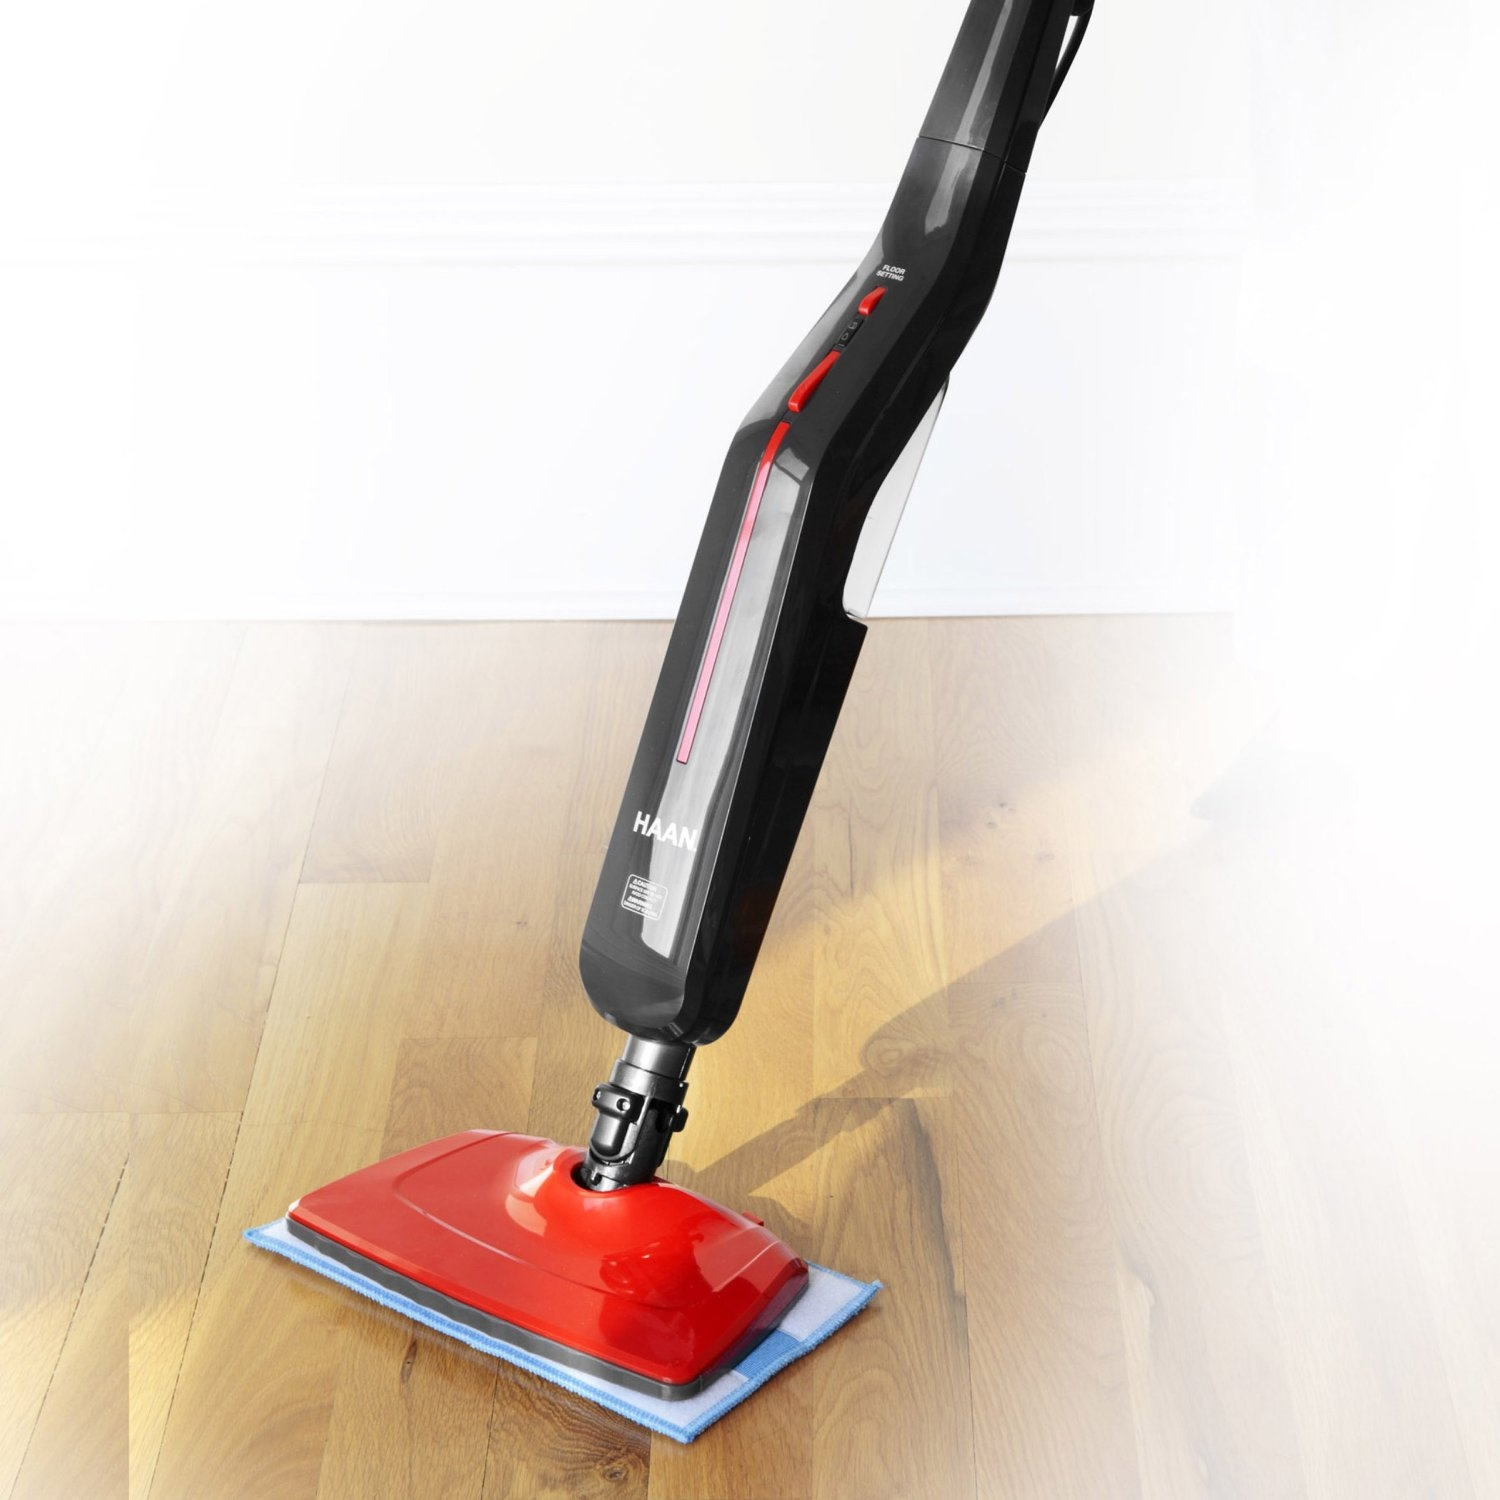 Best Steam Mop For Wood Laminate Floors